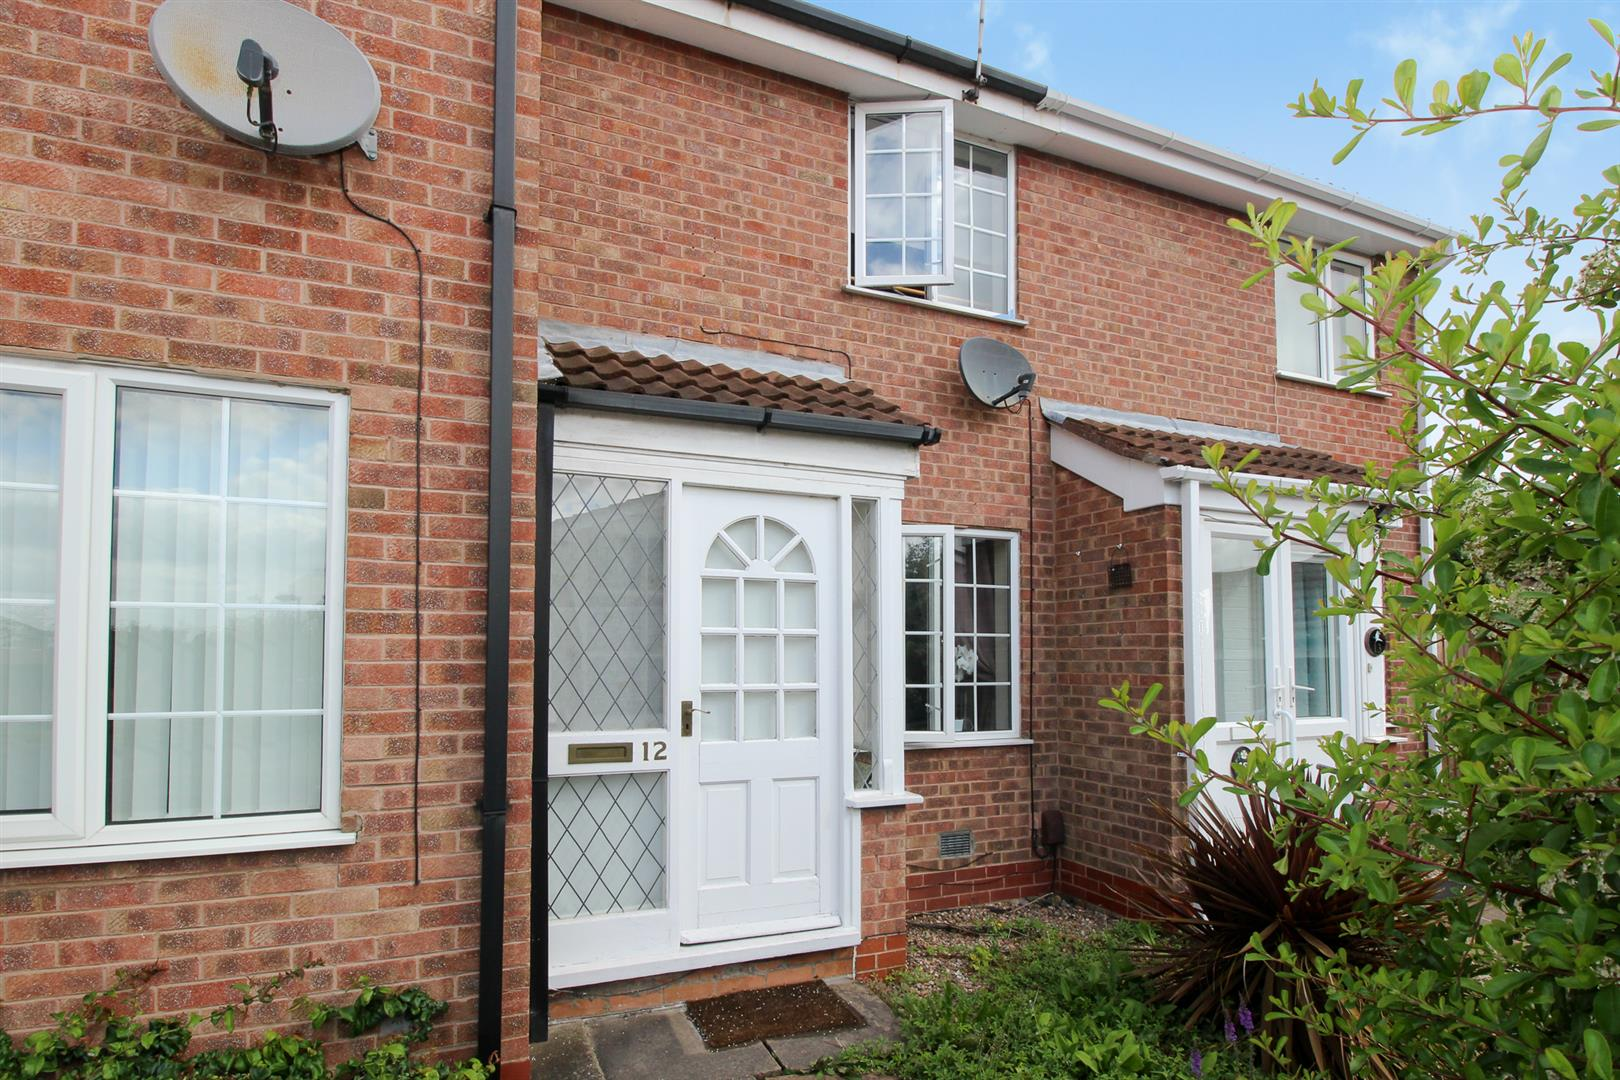 1 Bedroom House for sale in Blenheim Court, Sandiacre, Nottingham